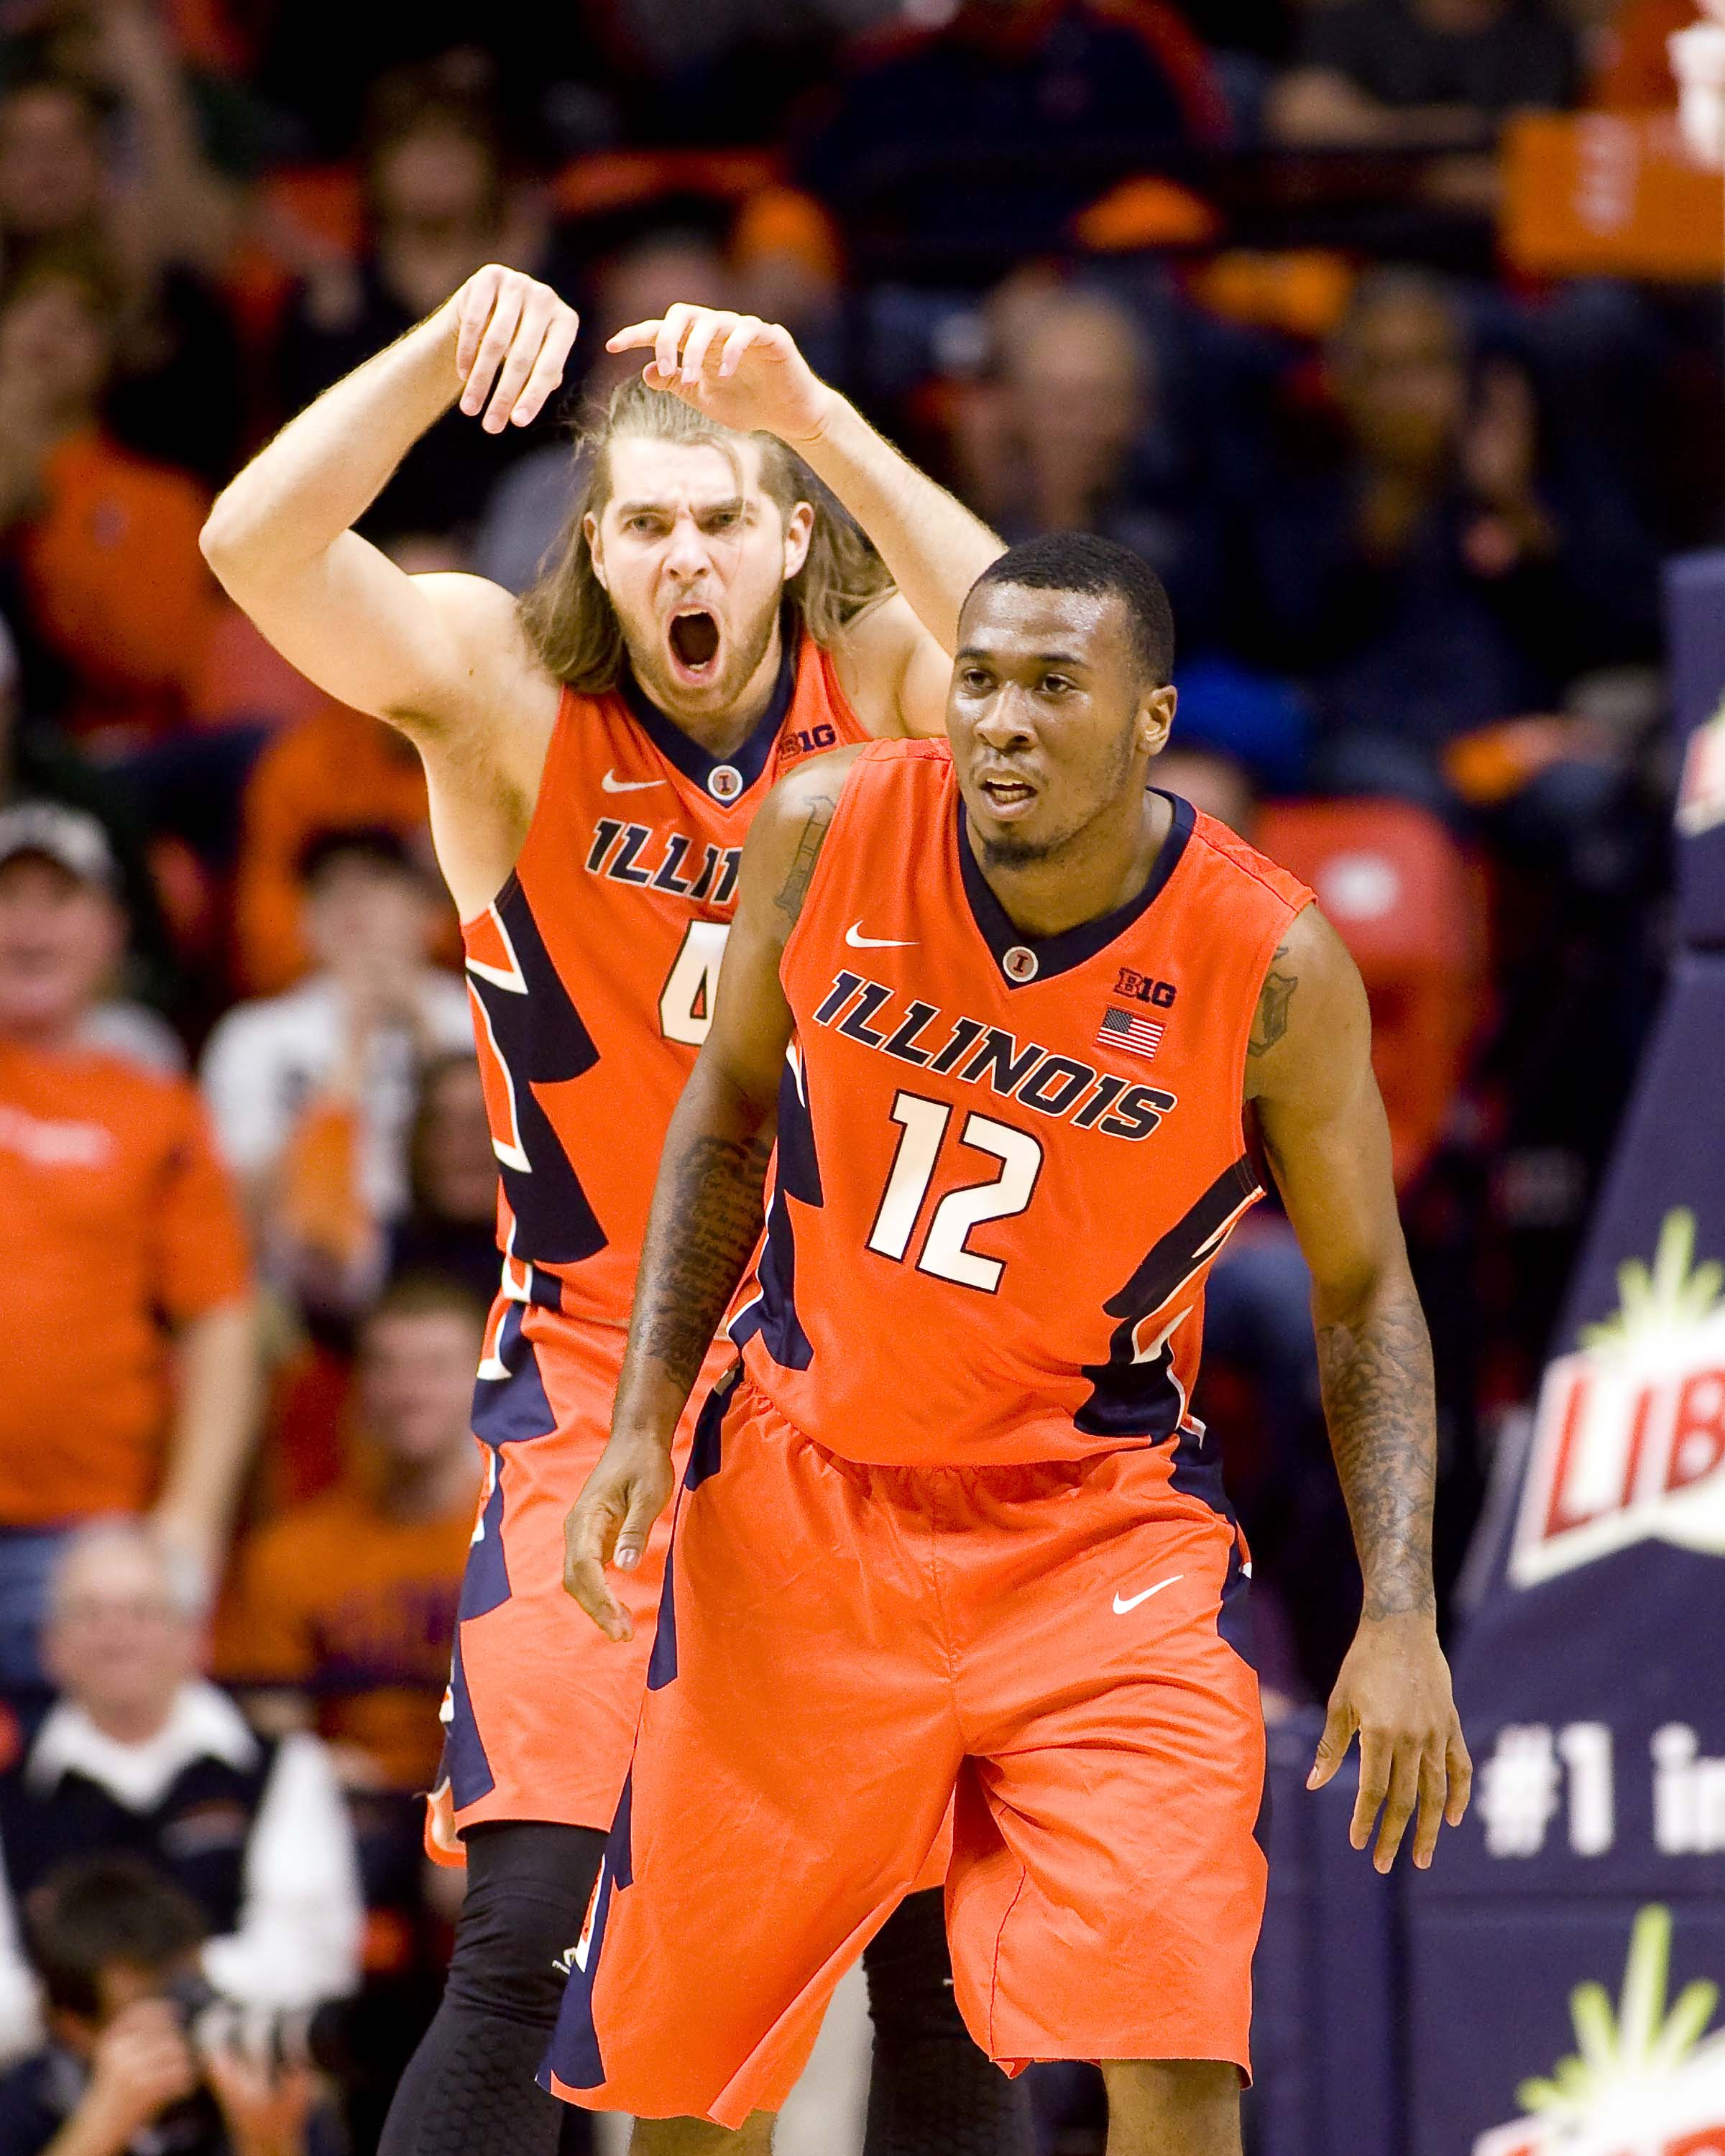 Bracketology: The bubble is a mess one week before Selection Sunday